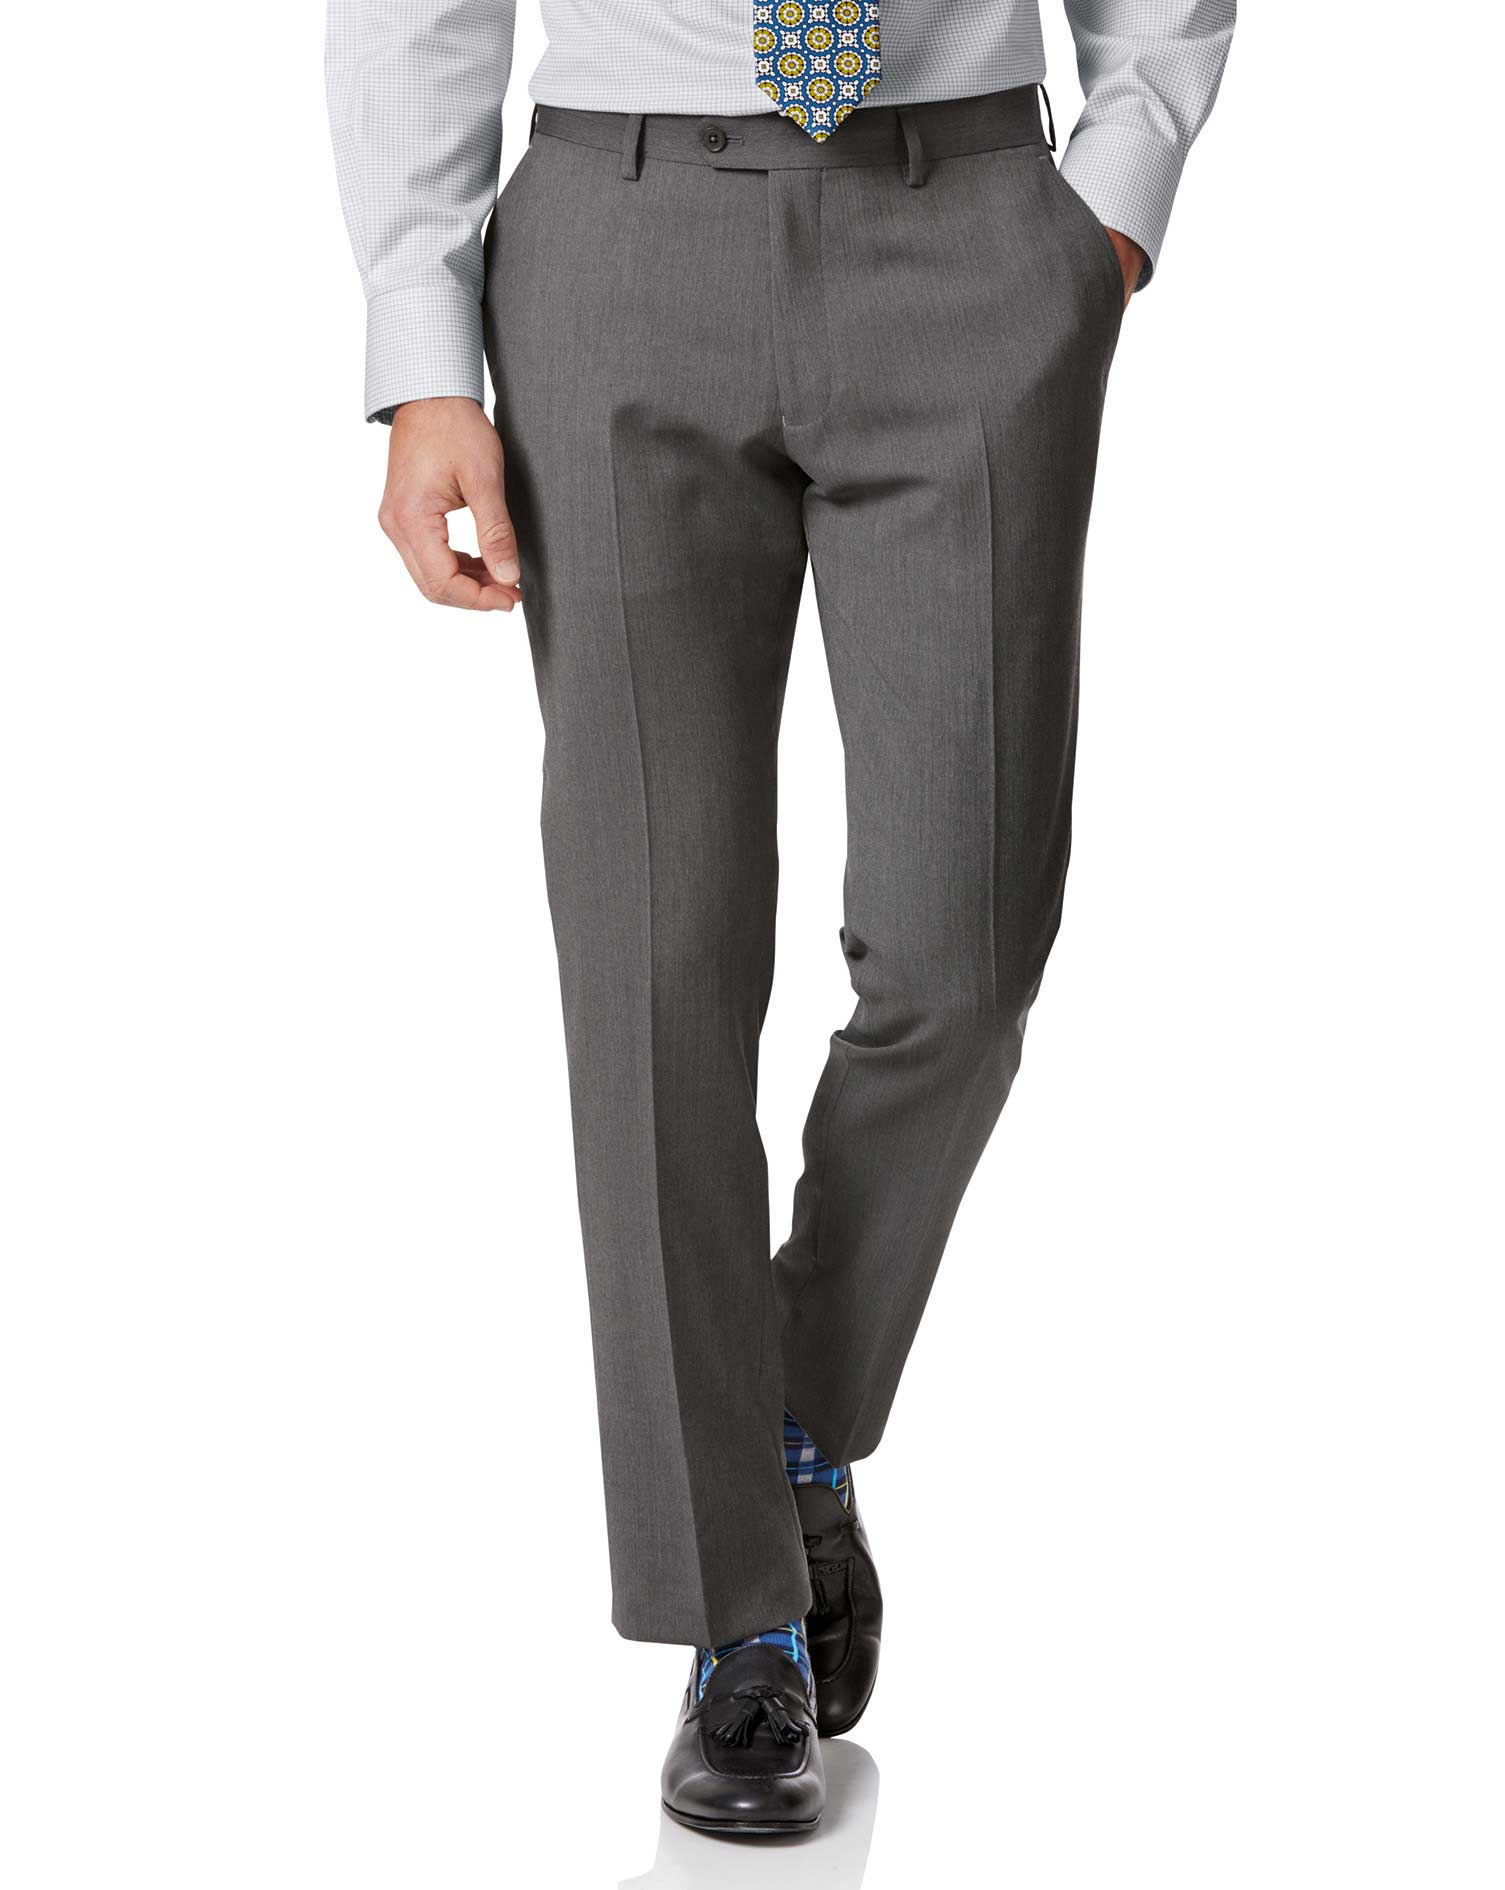 Light Grey Slim Fit Herringbone Business Suit Trousers Size W36 L32 by Charles Tyrwhitt